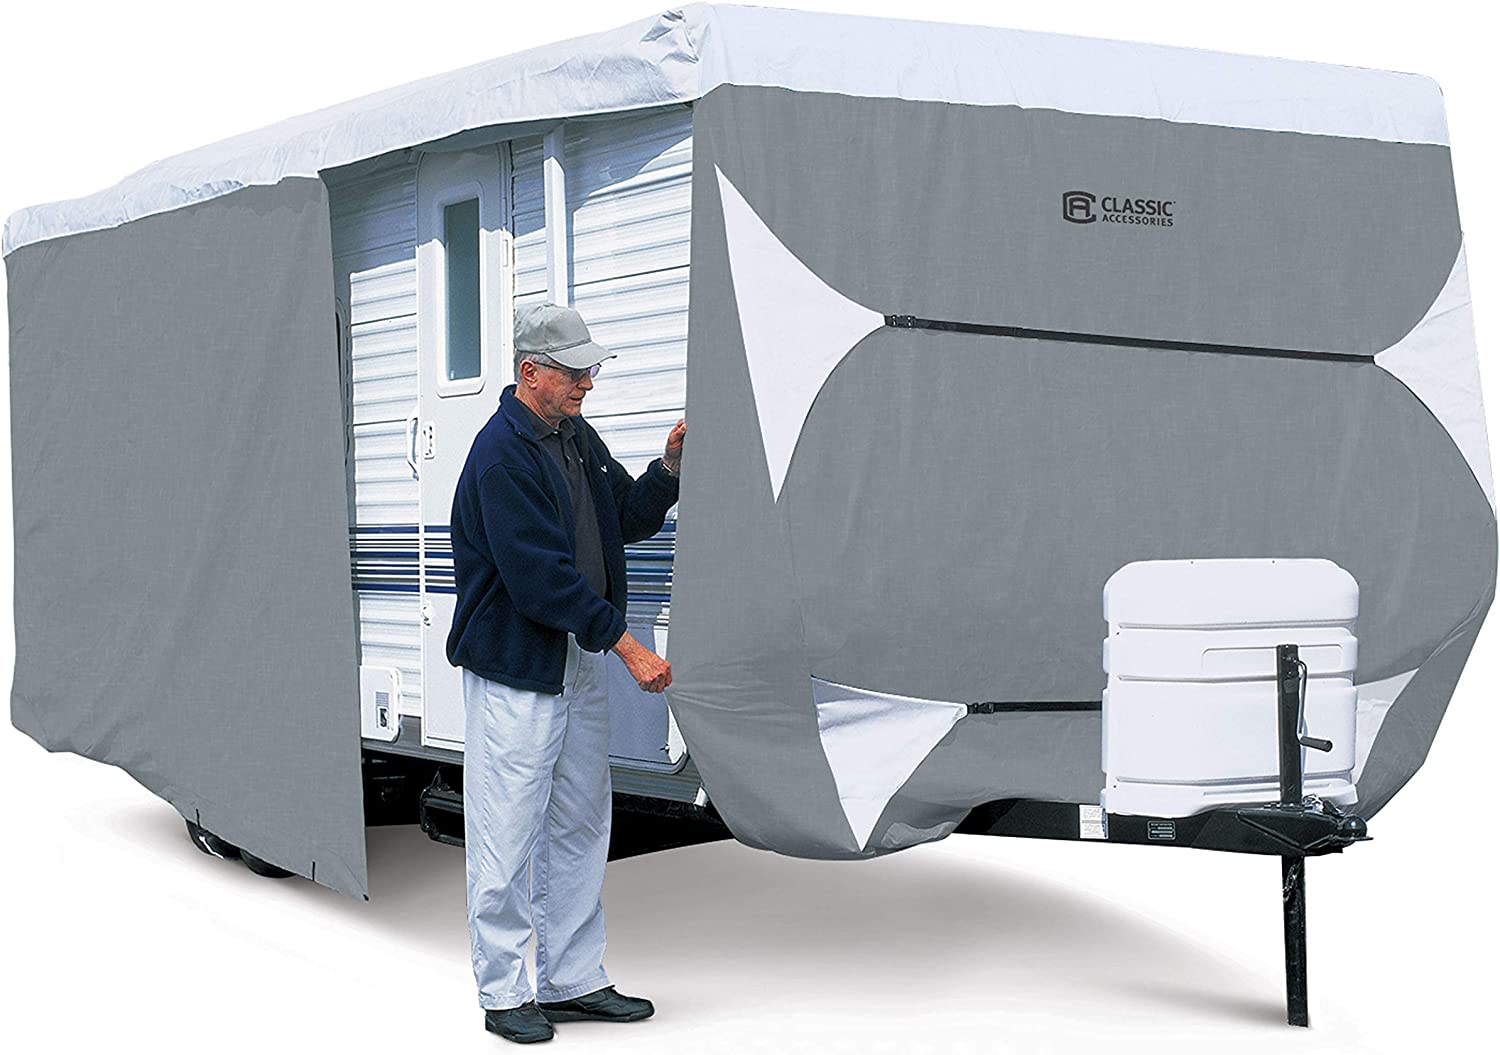 and Ramp Door Waterproof Durable RV Motorhome Travel Trailer//Toy Hauler Cover Fits Length 30-33 Travel Trailer Camper Zippered Panels Allow Access To The Door Engine Side Storage Areas